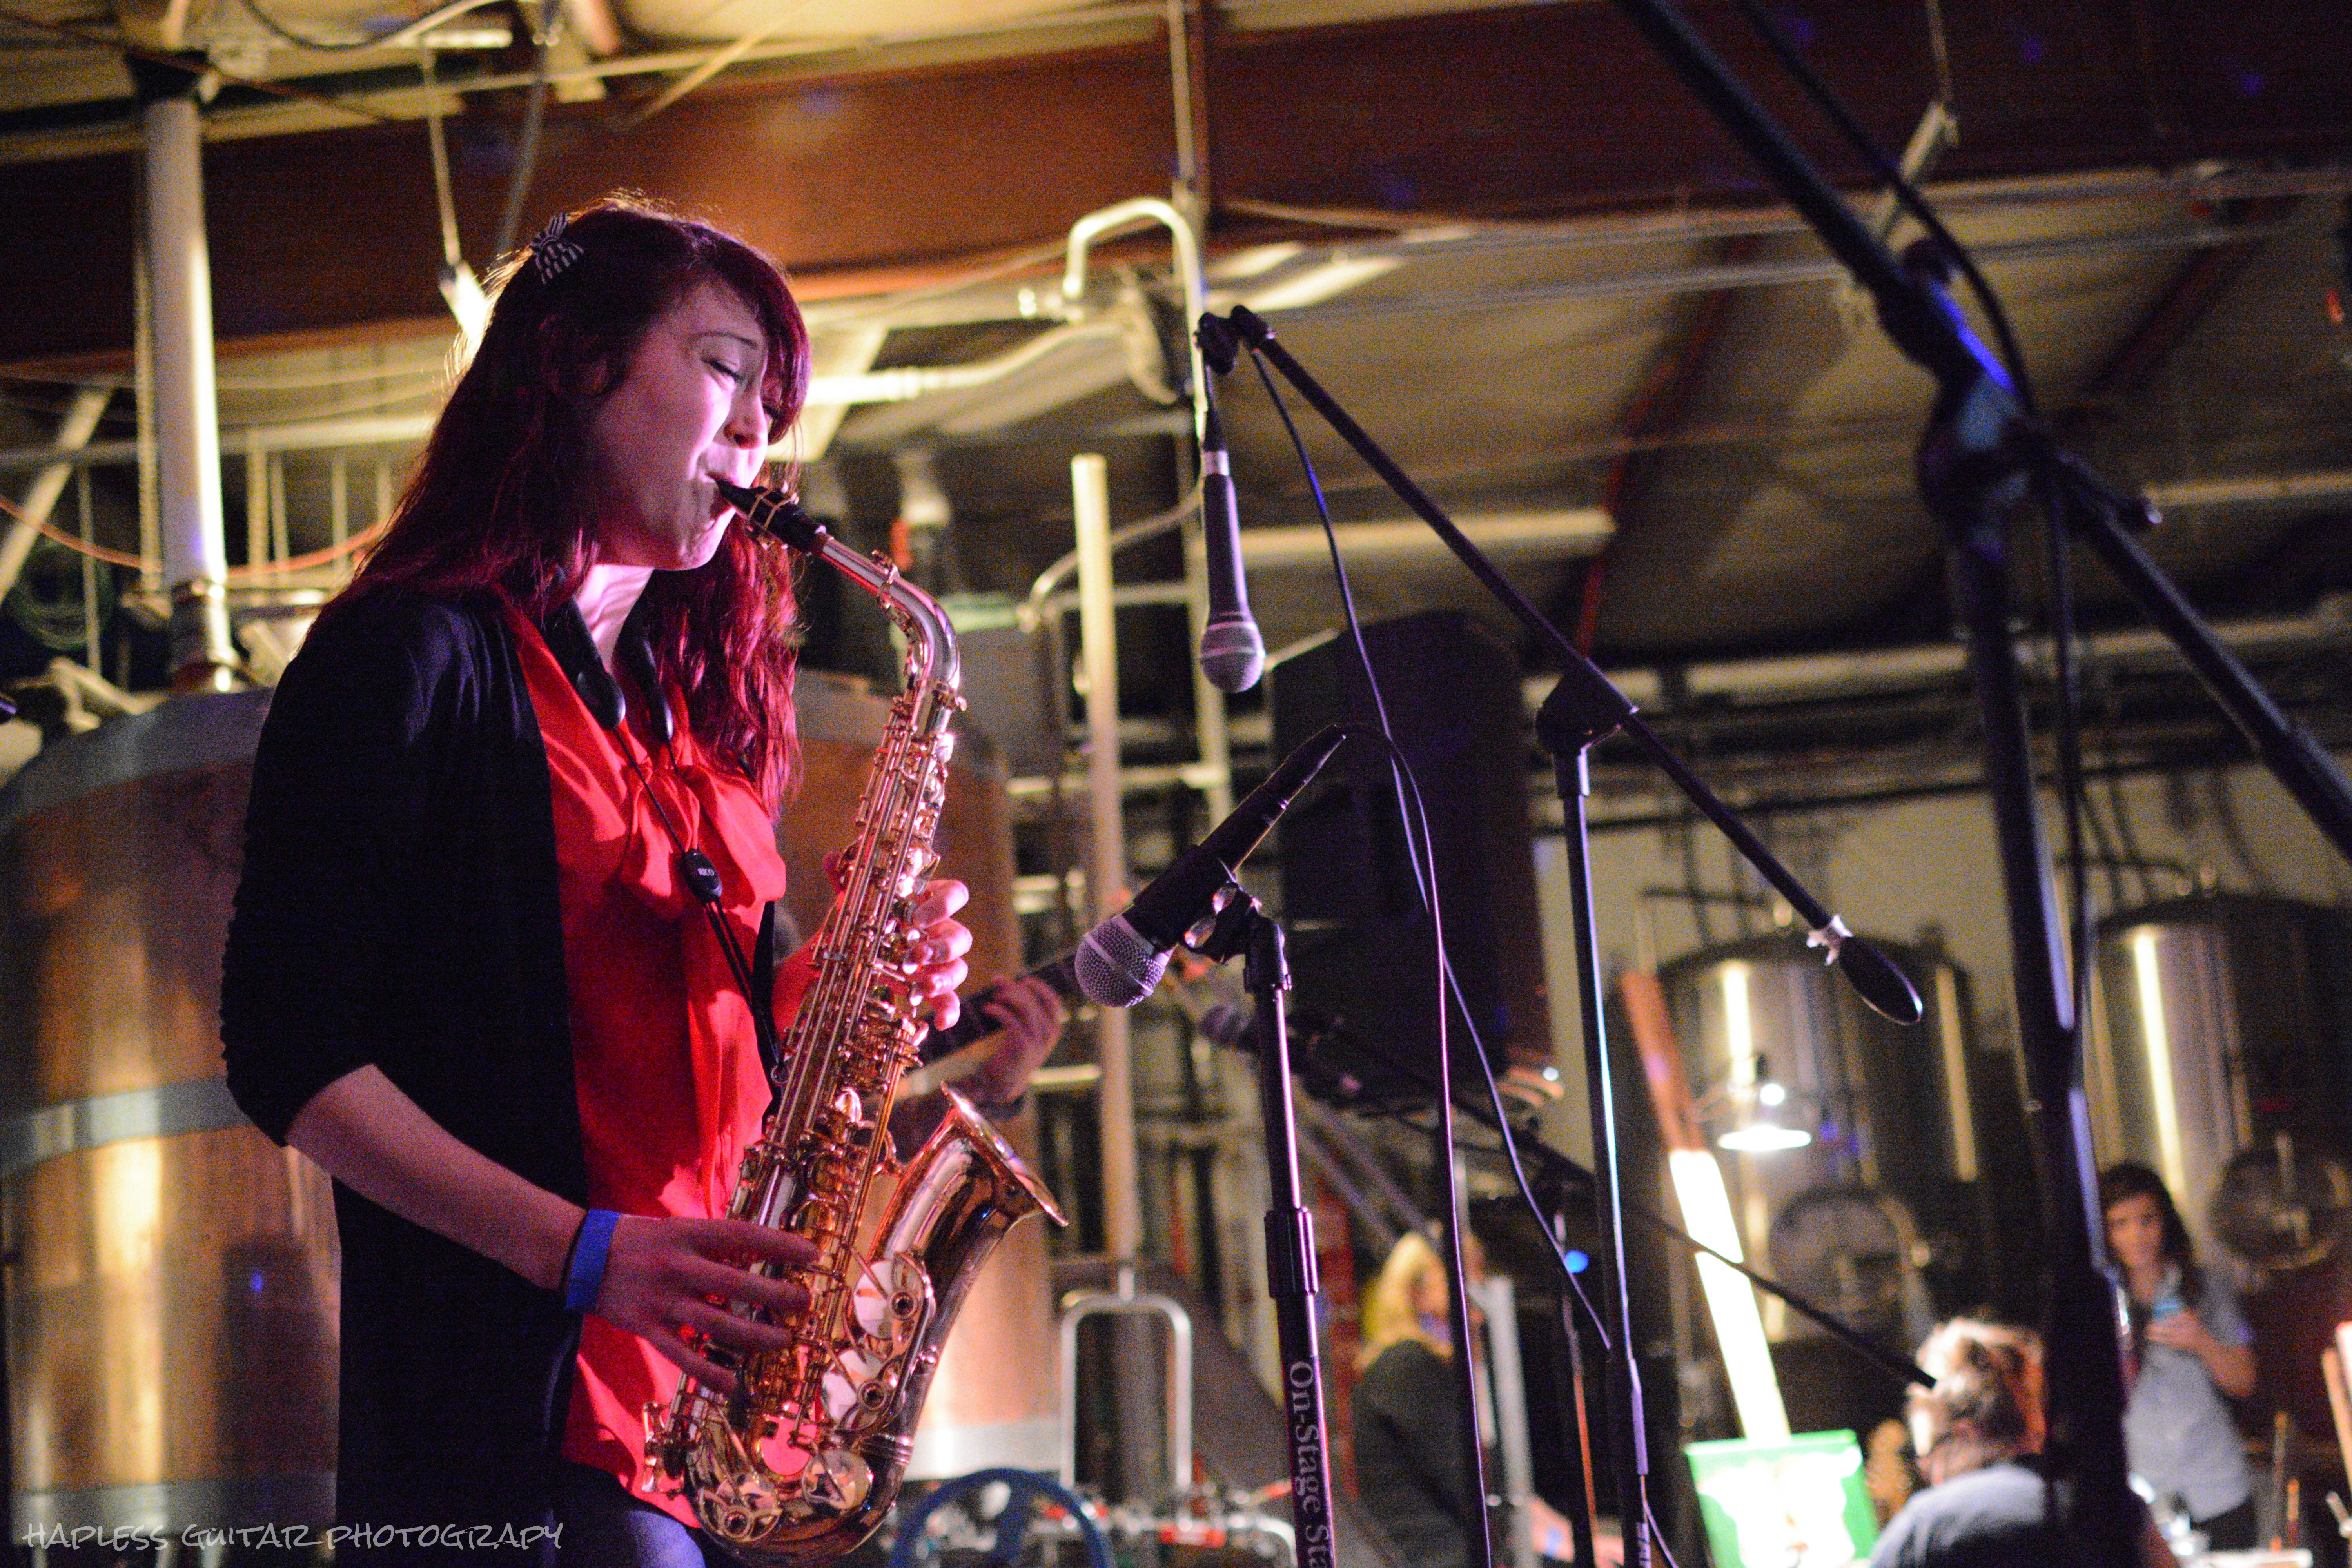 Amanda Gardier, an extremely versatile sax player who can sit in with anyone anywhere. You can ofter find her playing in the jazz venues in and around Indianapolis, and also with the Charlie Ballantine's band.